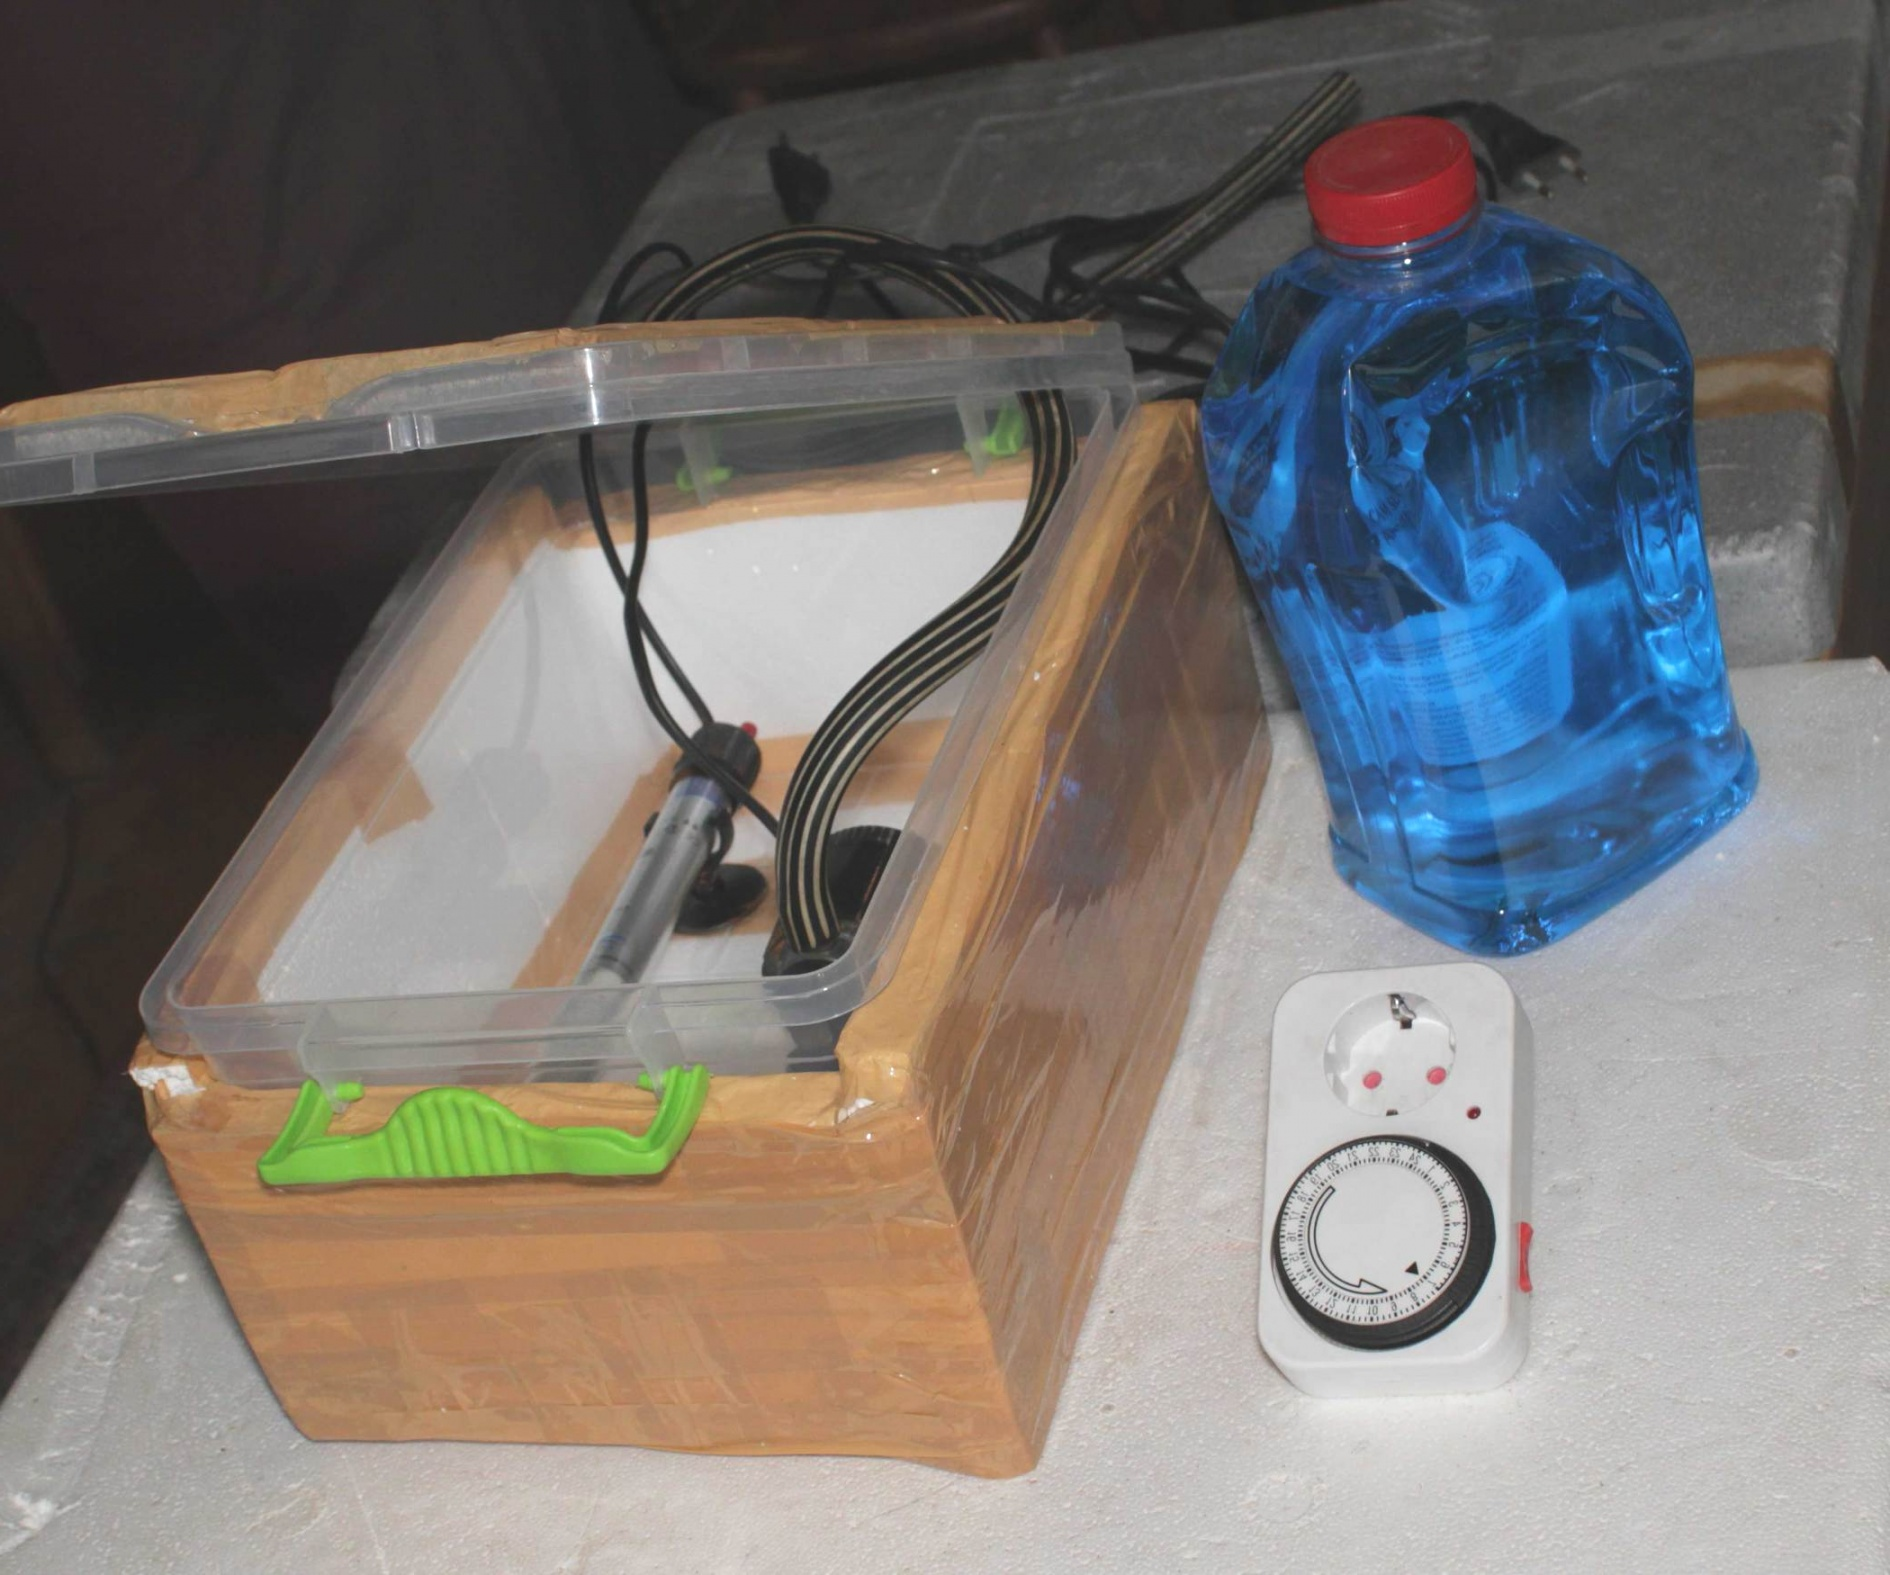 small greenhouse heater | DIY Greenhouse Heater | small greenhouse heater